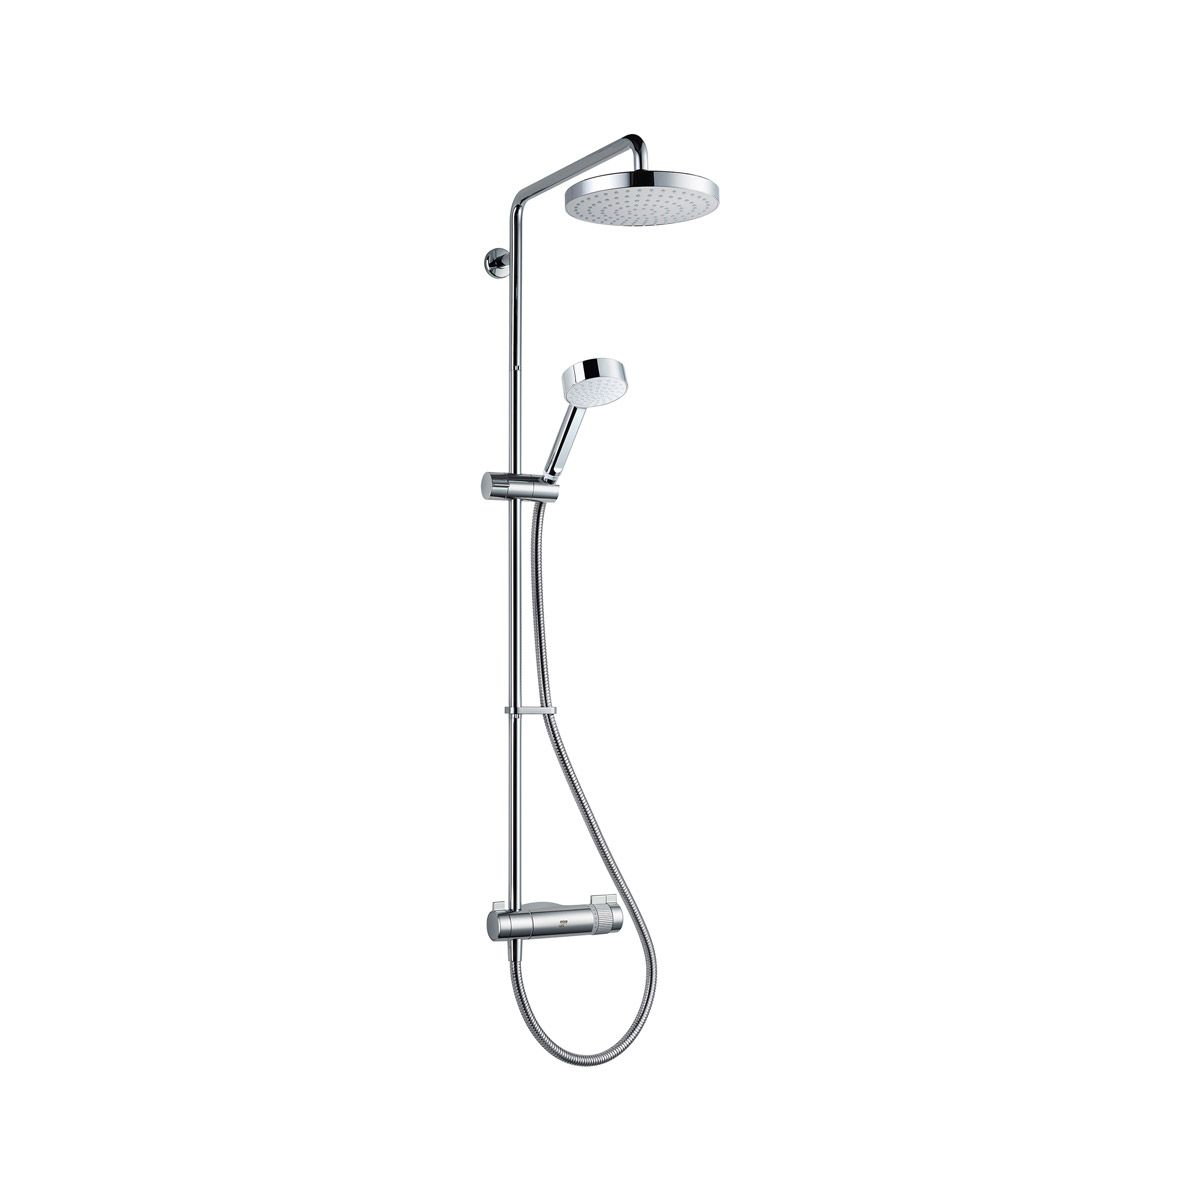 Grohe Euphoria Douchesysteem 180 Chroom Mira Agile Erd Thermostatic Mixer Shower Mixer Shower Mixers